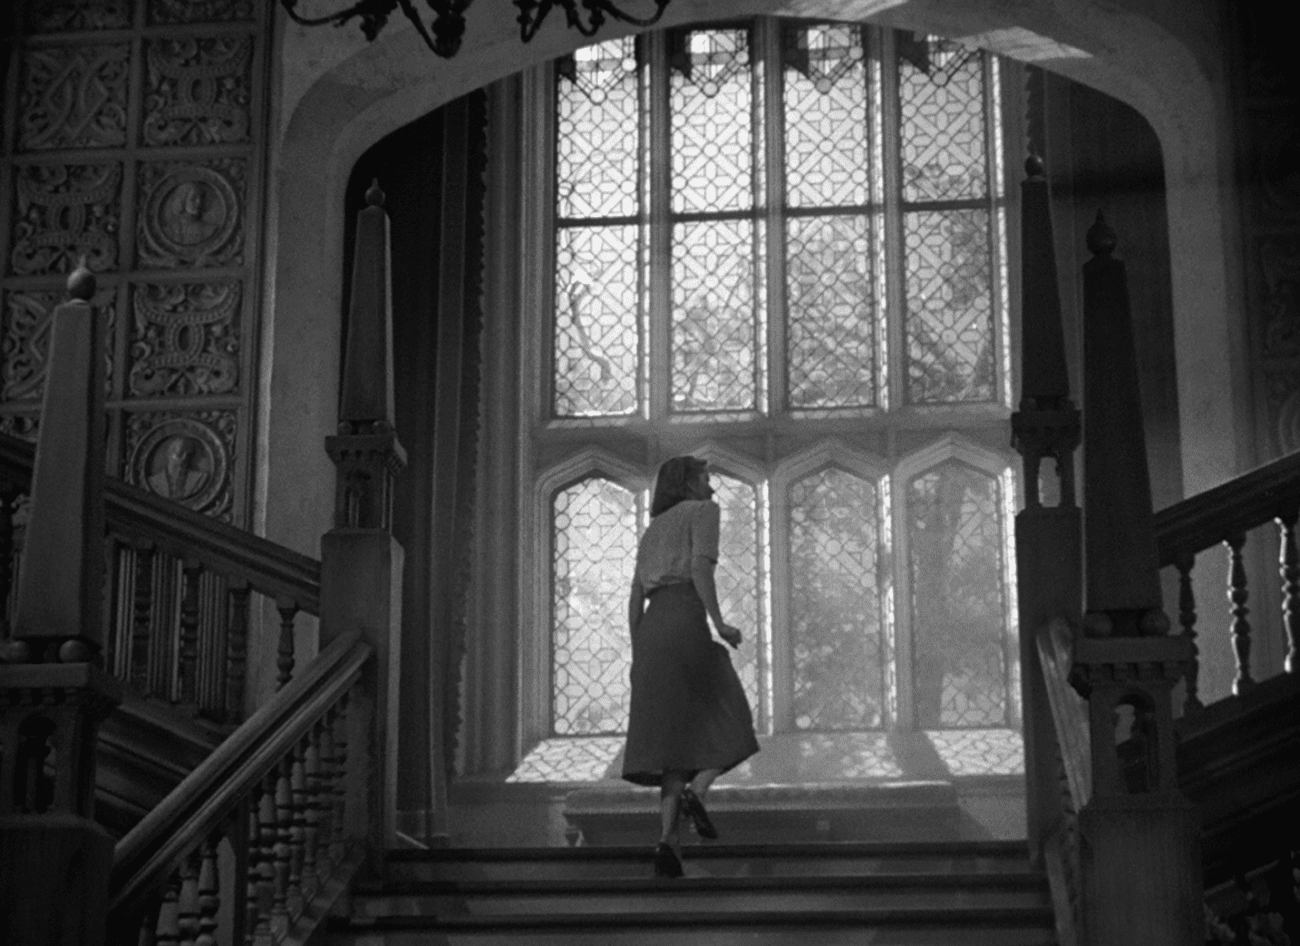 Screenshot of Rebecca shows a woman ascending a grand staircase near a large ornate window